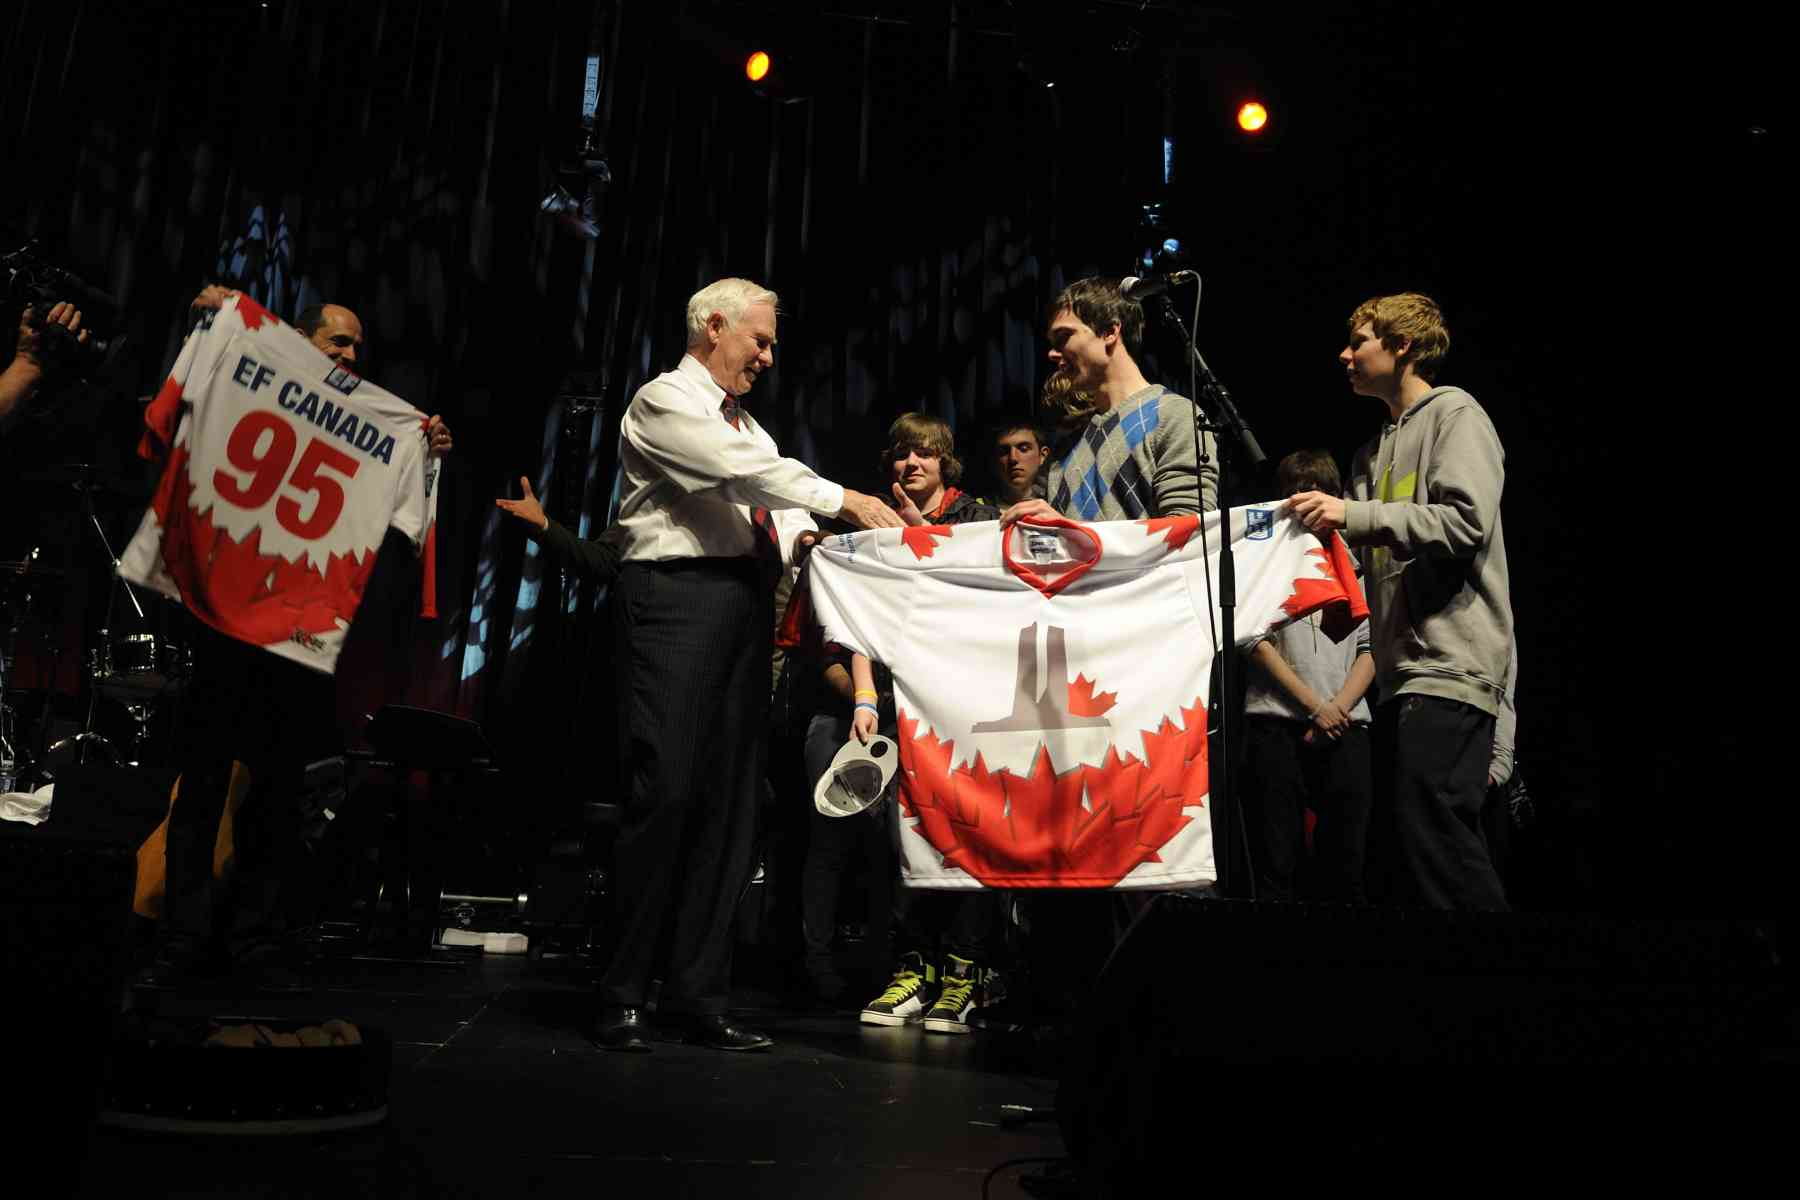 The Canadian students offered hockey jerseys to both the Governor General and the Minister of Veterans Affairs, Steven Blaney.